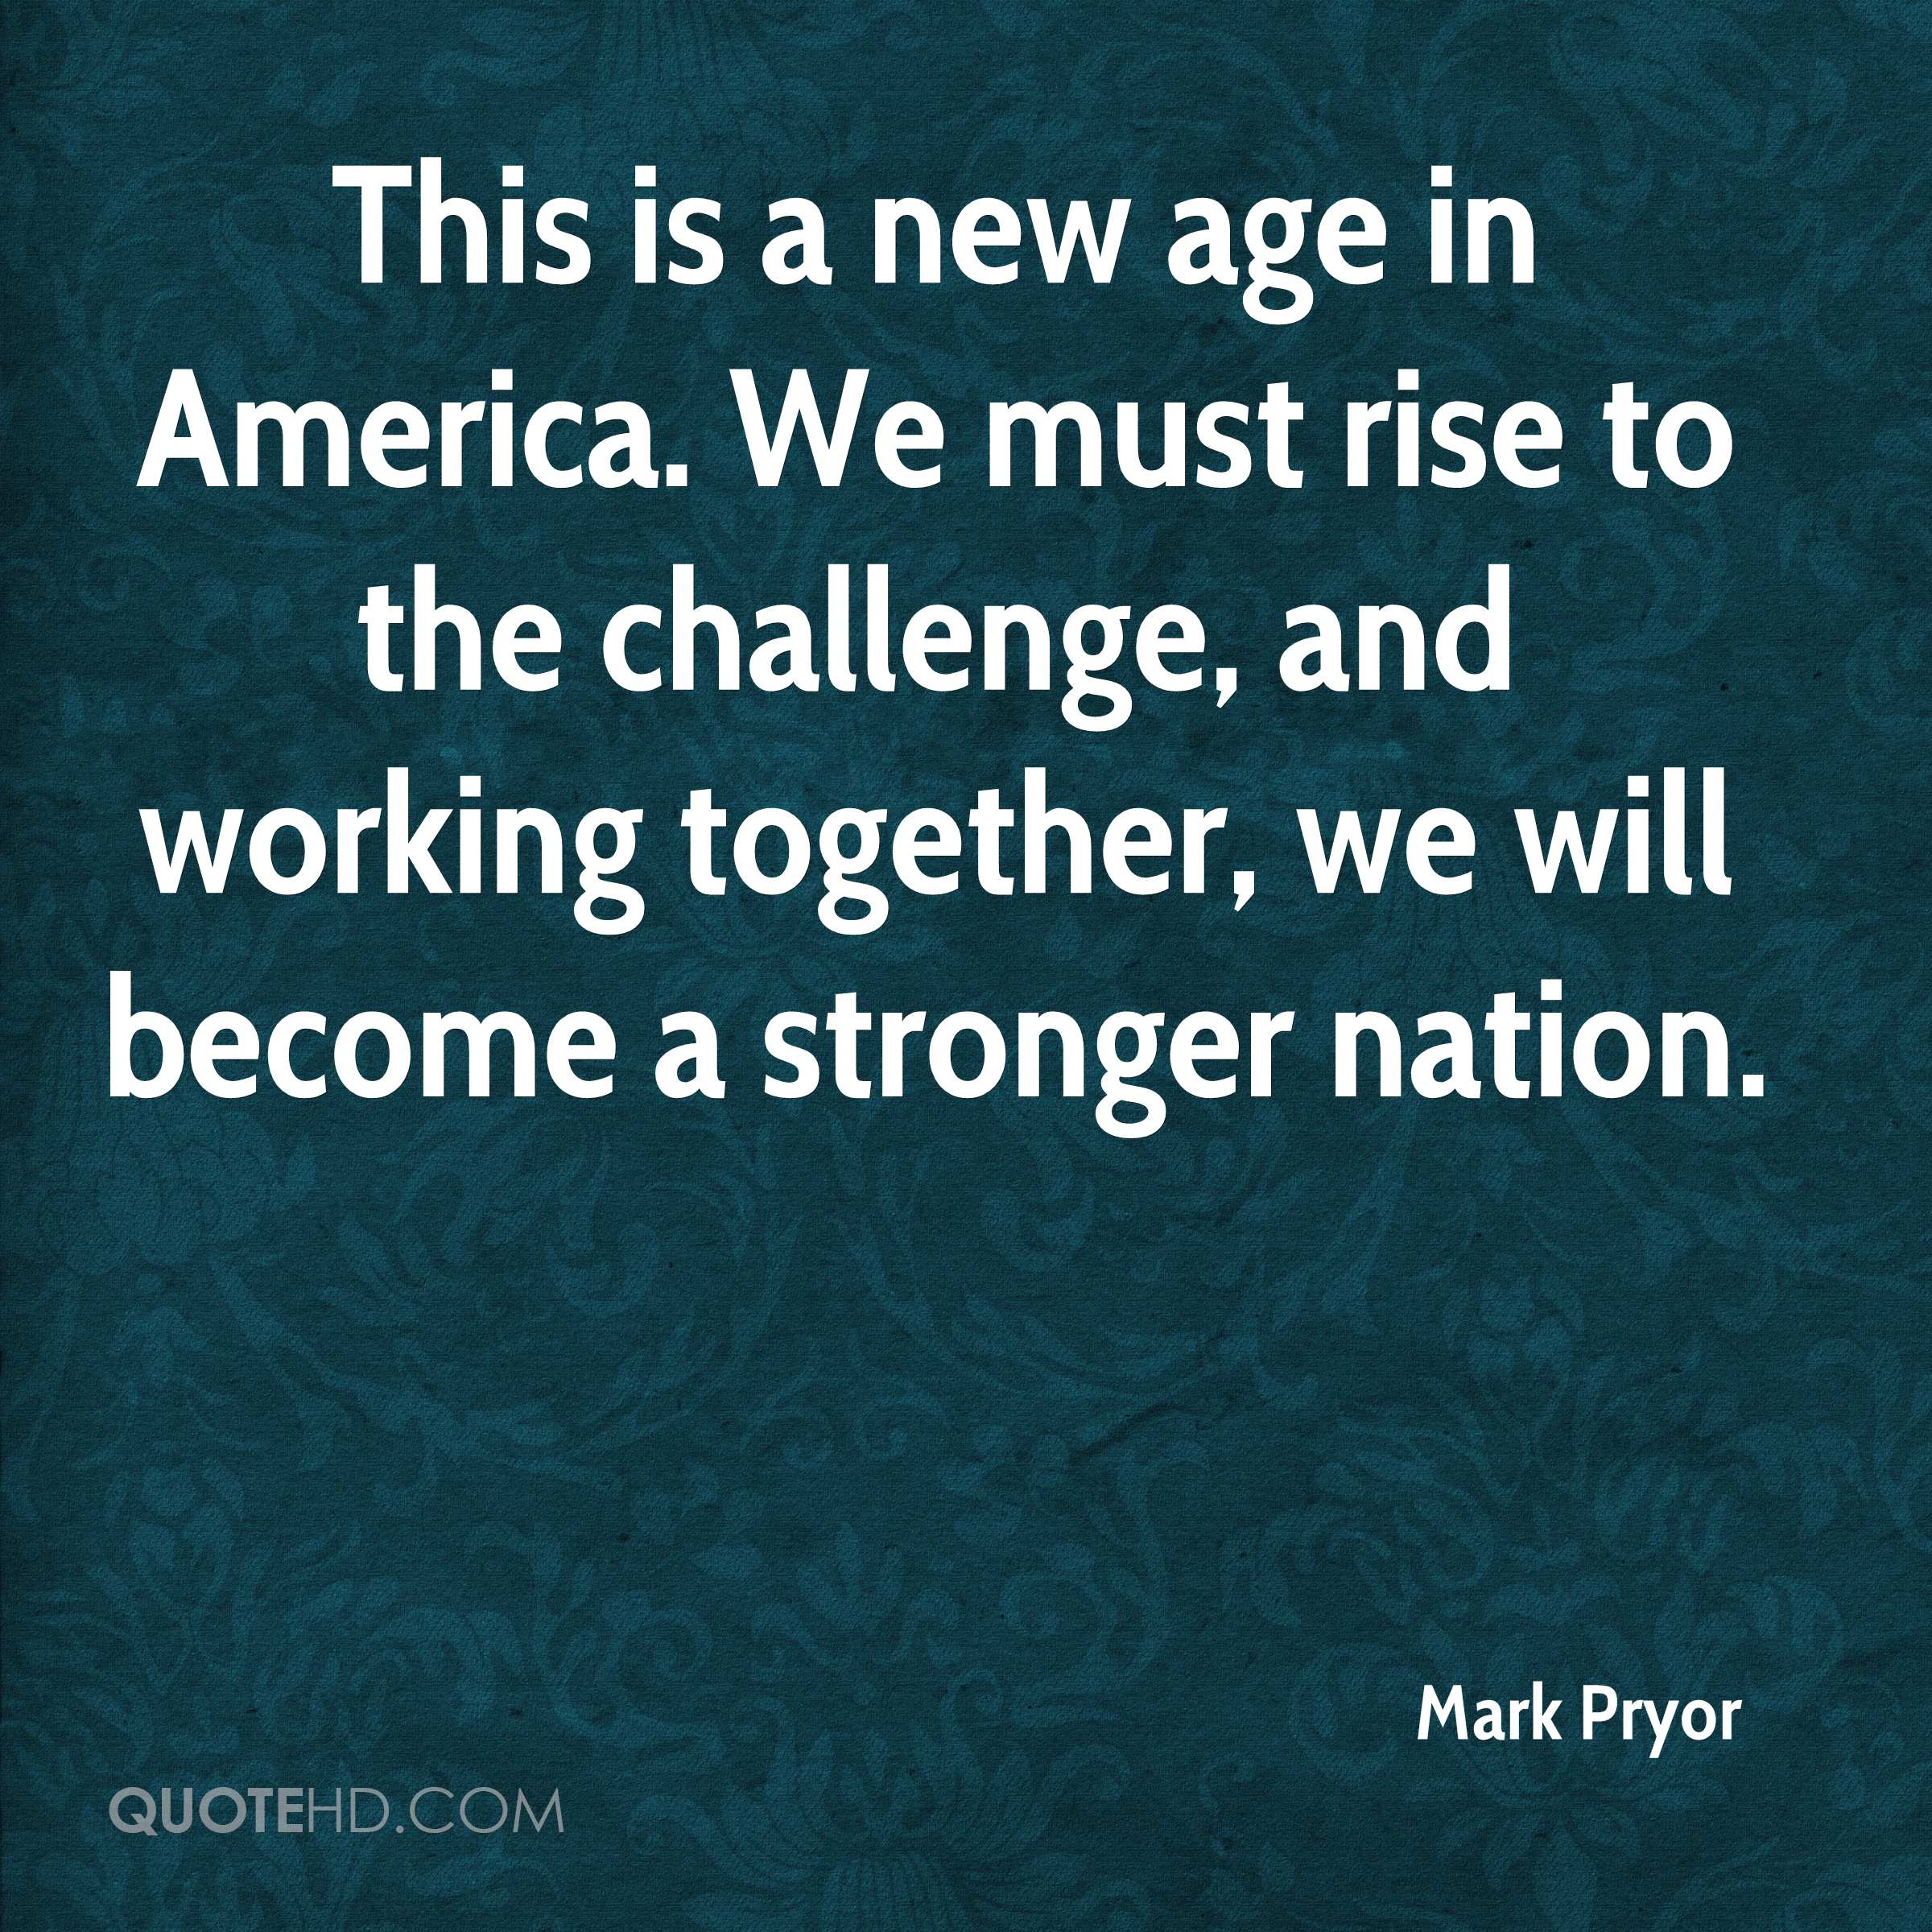 This is a new age in America. We must rise to the challenge, and working together, we will become a stronger nation.